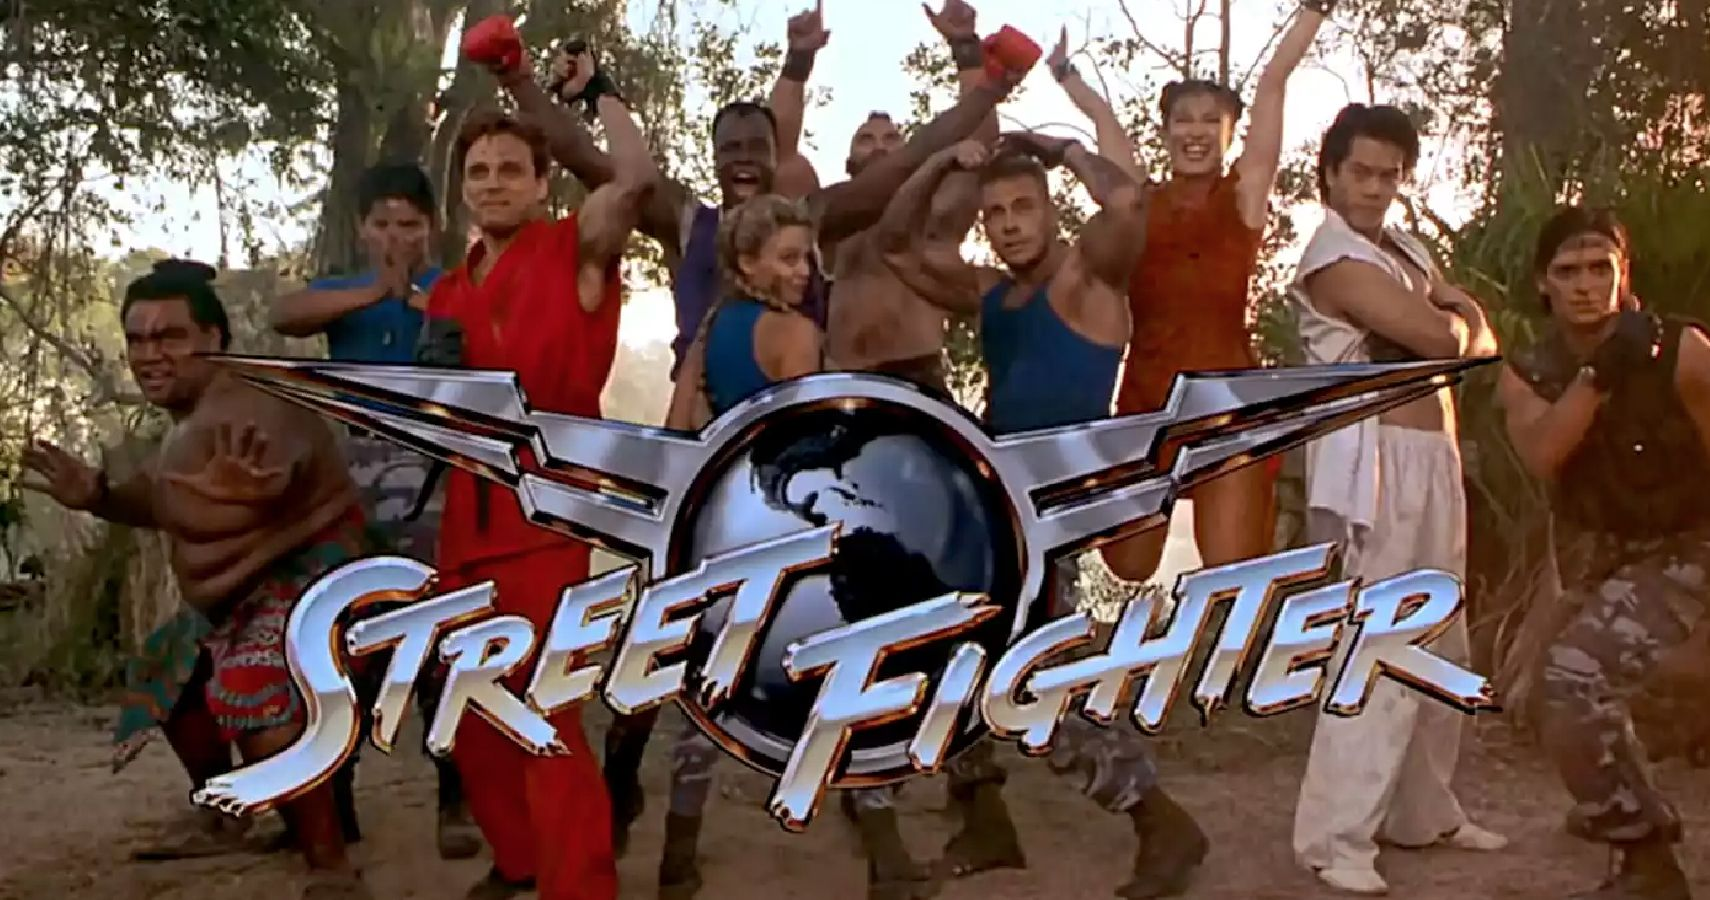 Street Fighter 15 Insane Differences Between The Movie And The Games